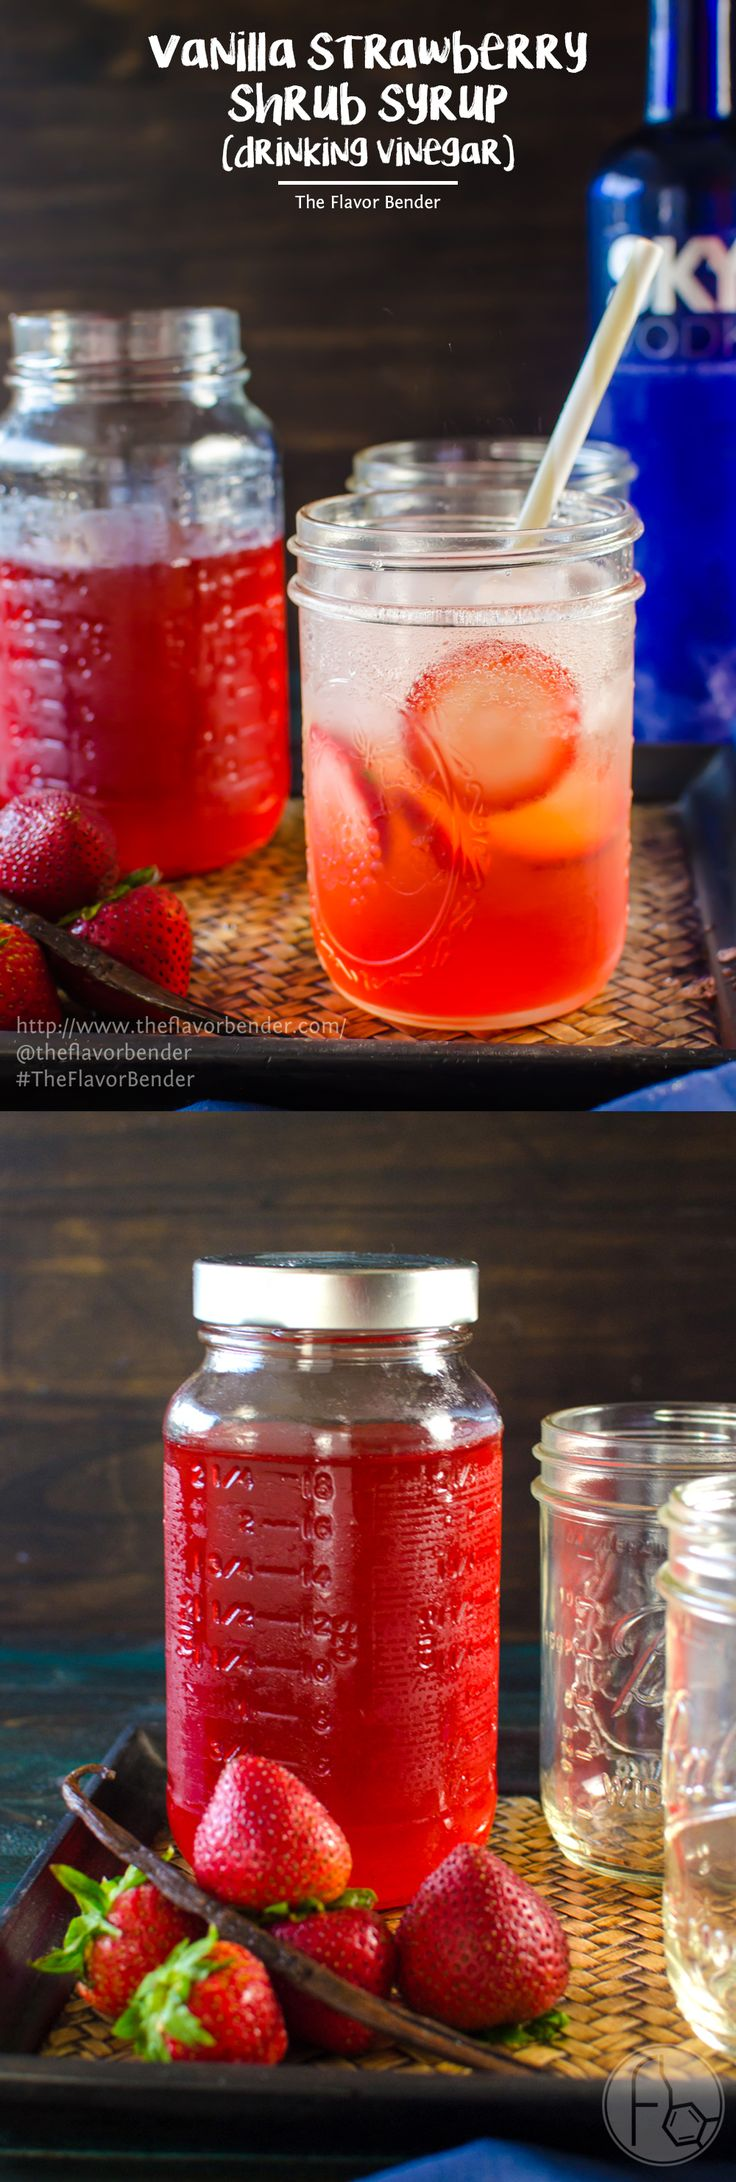 Vanilla Strawberry Shrub Syrup - Make the most of your seasonal strawberries with this delicious syrup! Overripe strawberries, apple cider vinegar, sugar and vanilla are all you need for this bright, pick-me-up drinking vinegar recipe for a hot summer day! SAVE to repin. CLICK to get the recipe. #TheFlavorBender